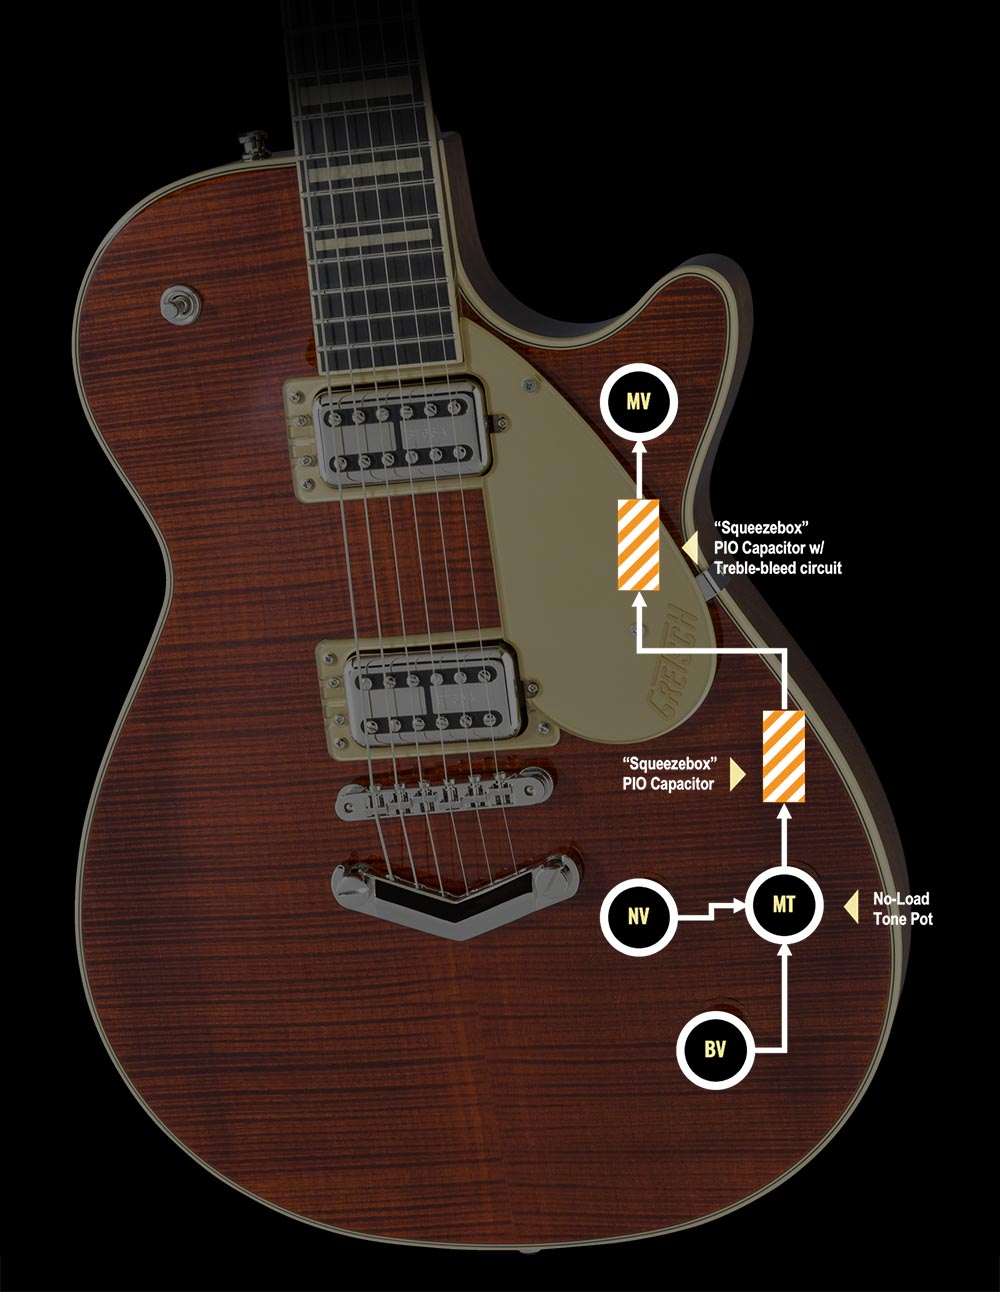 Gretsch Bst Guitar Wiring Diagrams Diagram Libraries Librarygretsch Introduces New Players Edition And Electromatic Jet